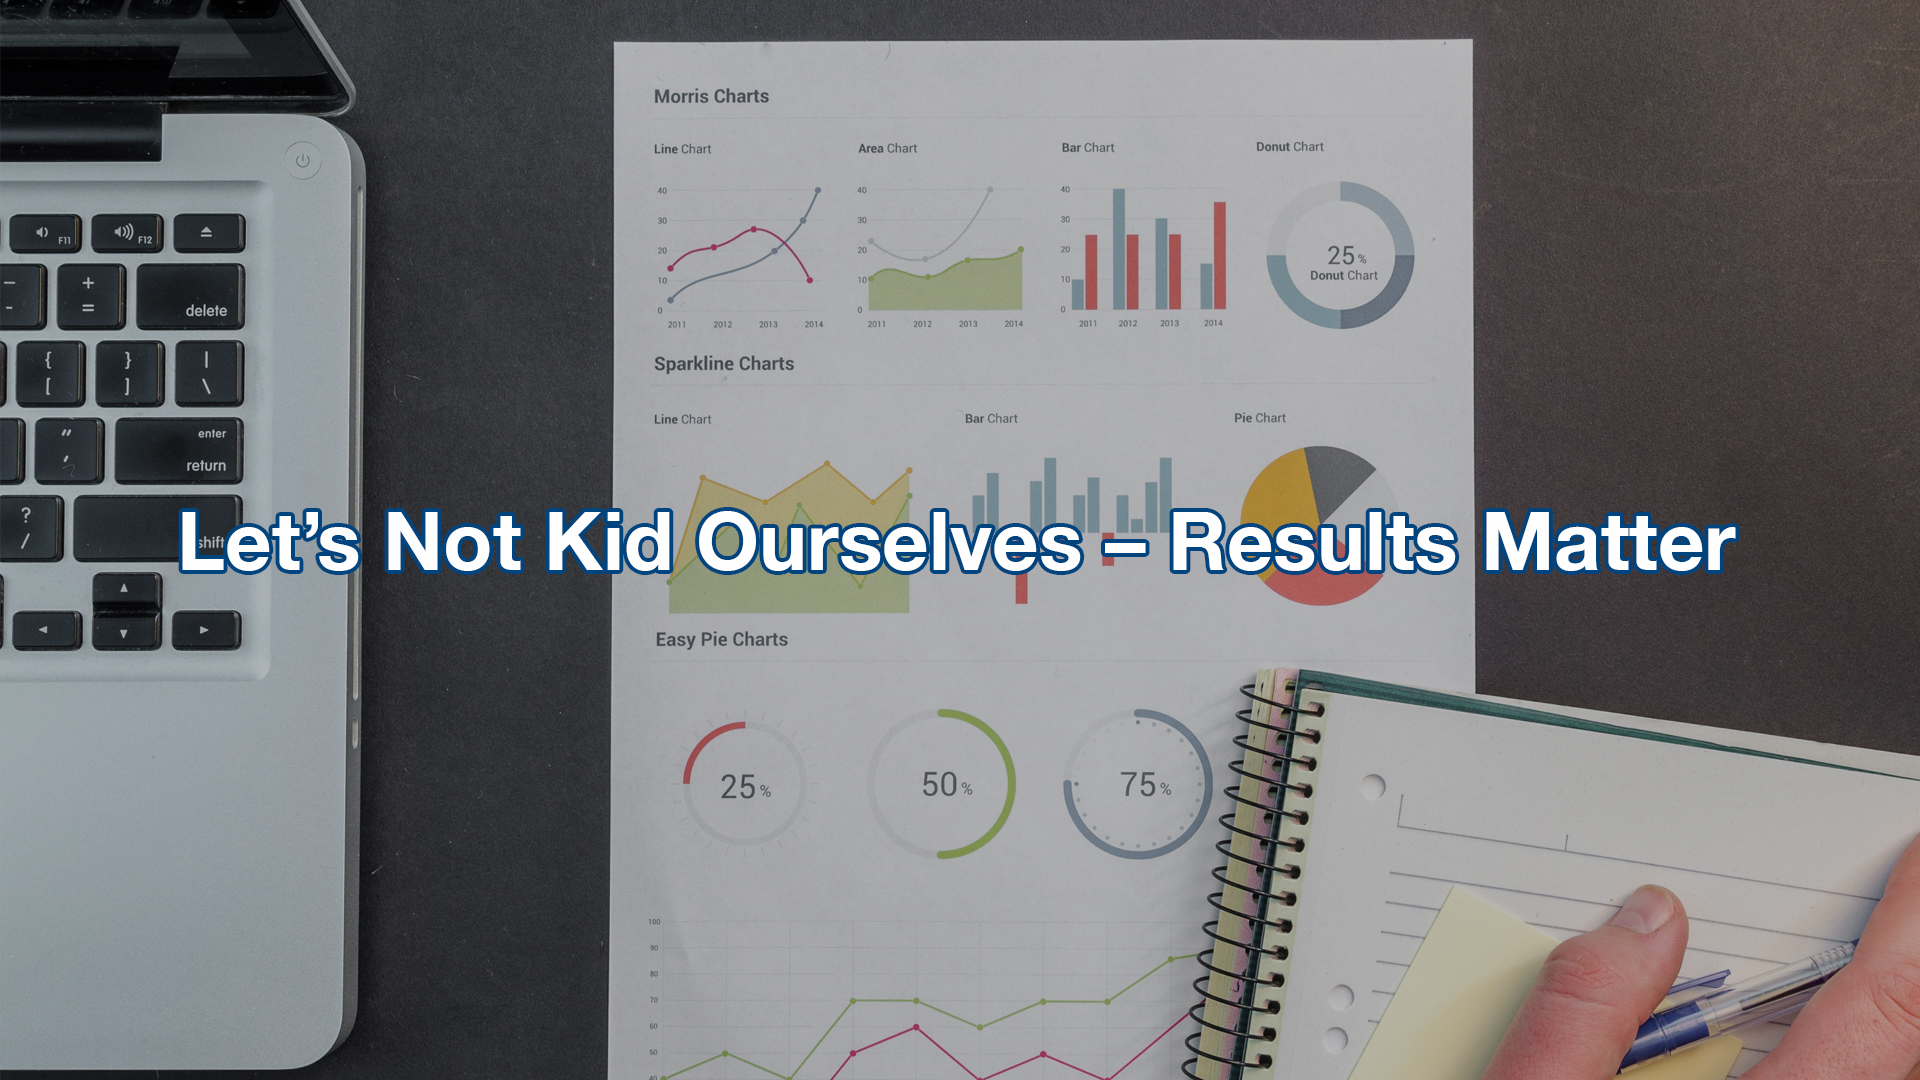 Let's Not Kid Ourselves – Results Matter 1920x1080.jpg